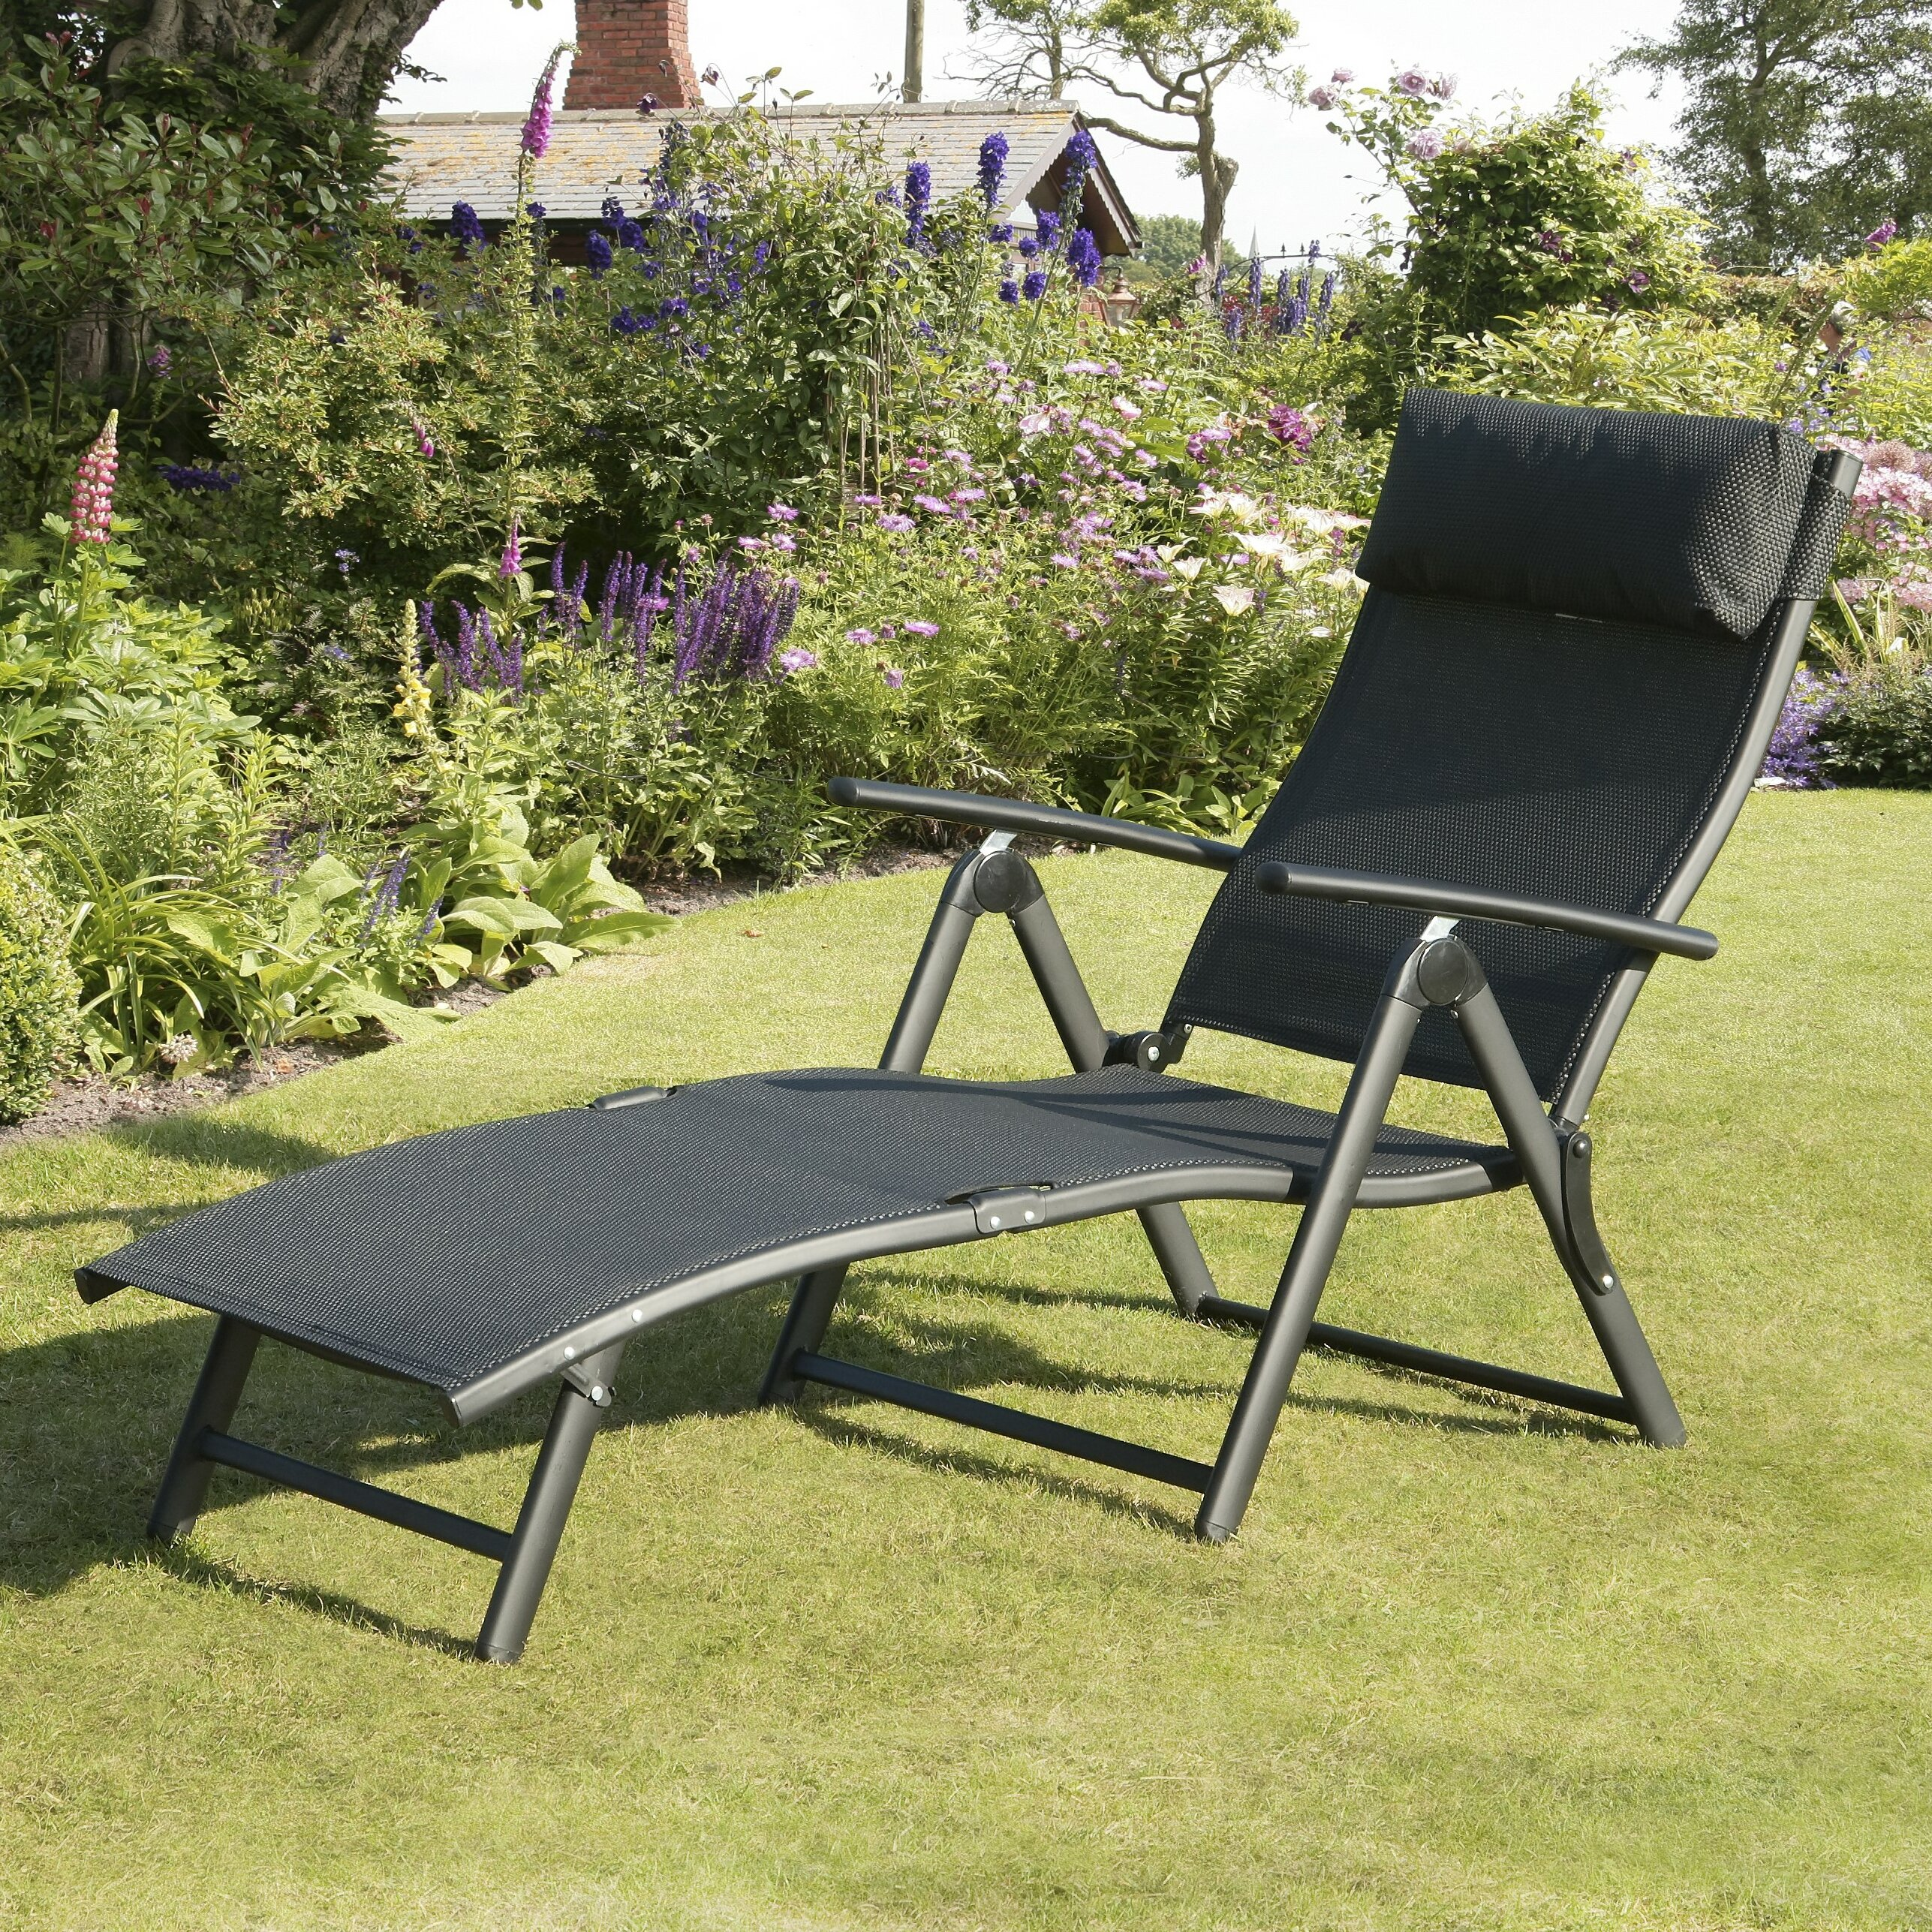 SunTime Outdoor Living Havana Chaise Lounge & Reviews ... on Outdoor Living Lounge id=99968